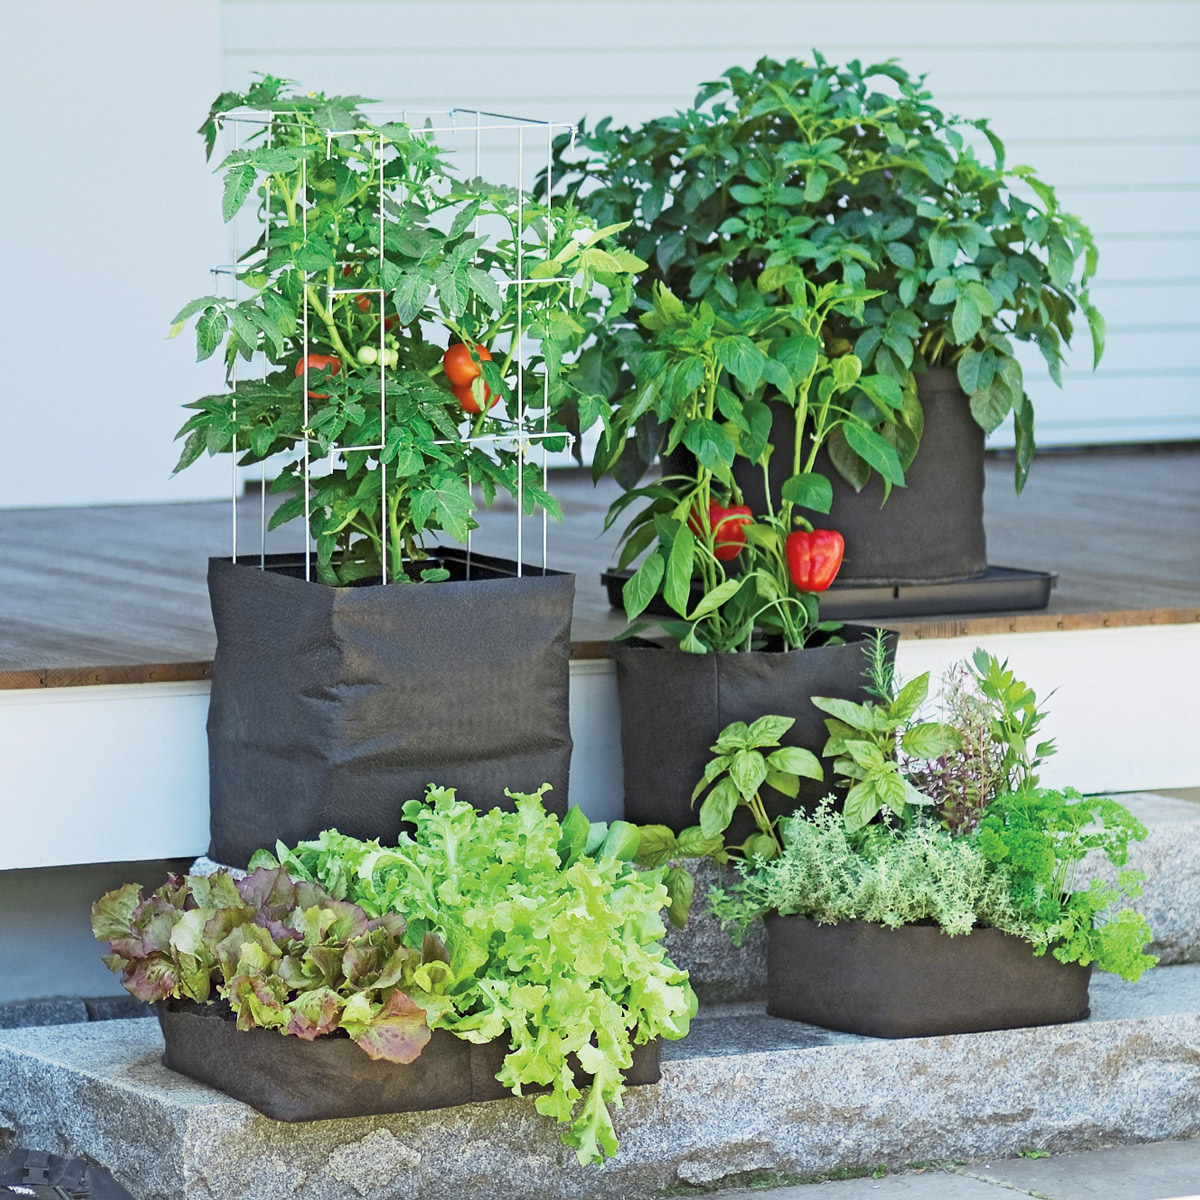 Grow bags tomatoes peppers herbs and potatoes the - Planter tomates cerises en pot ...